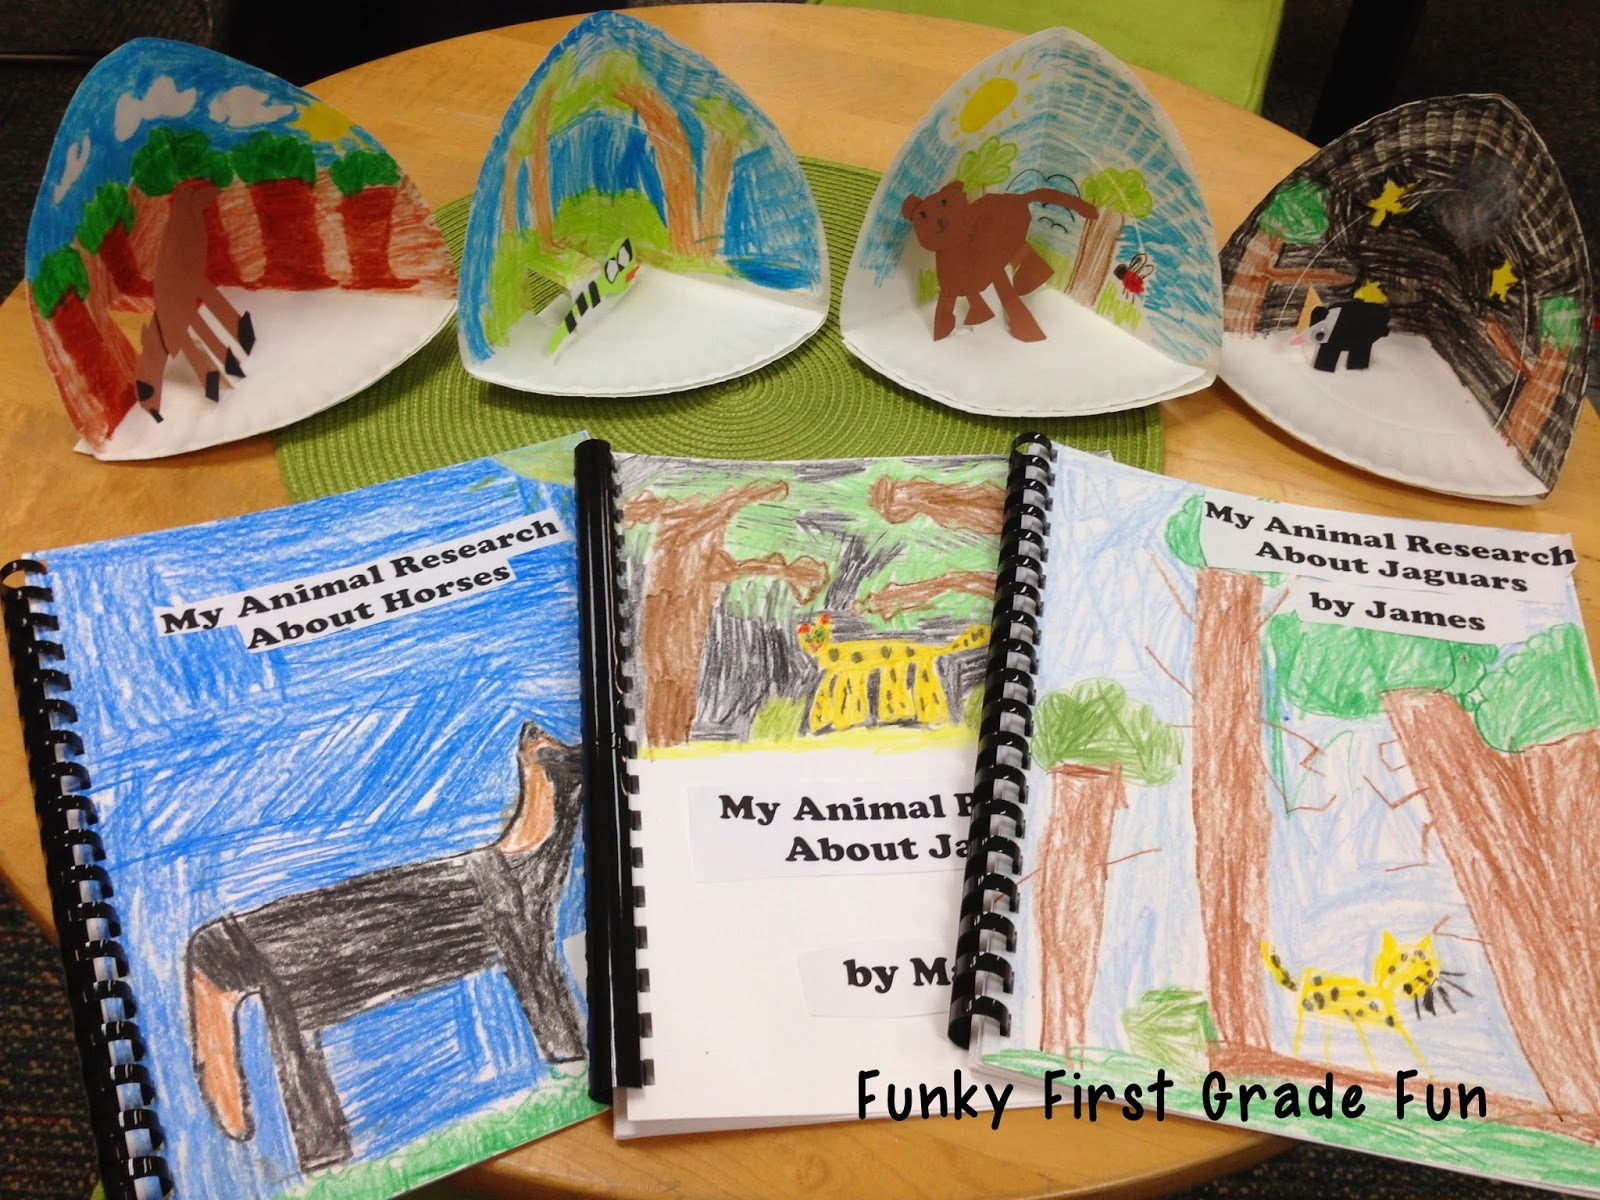 Funky First Grade Fun Animal Research